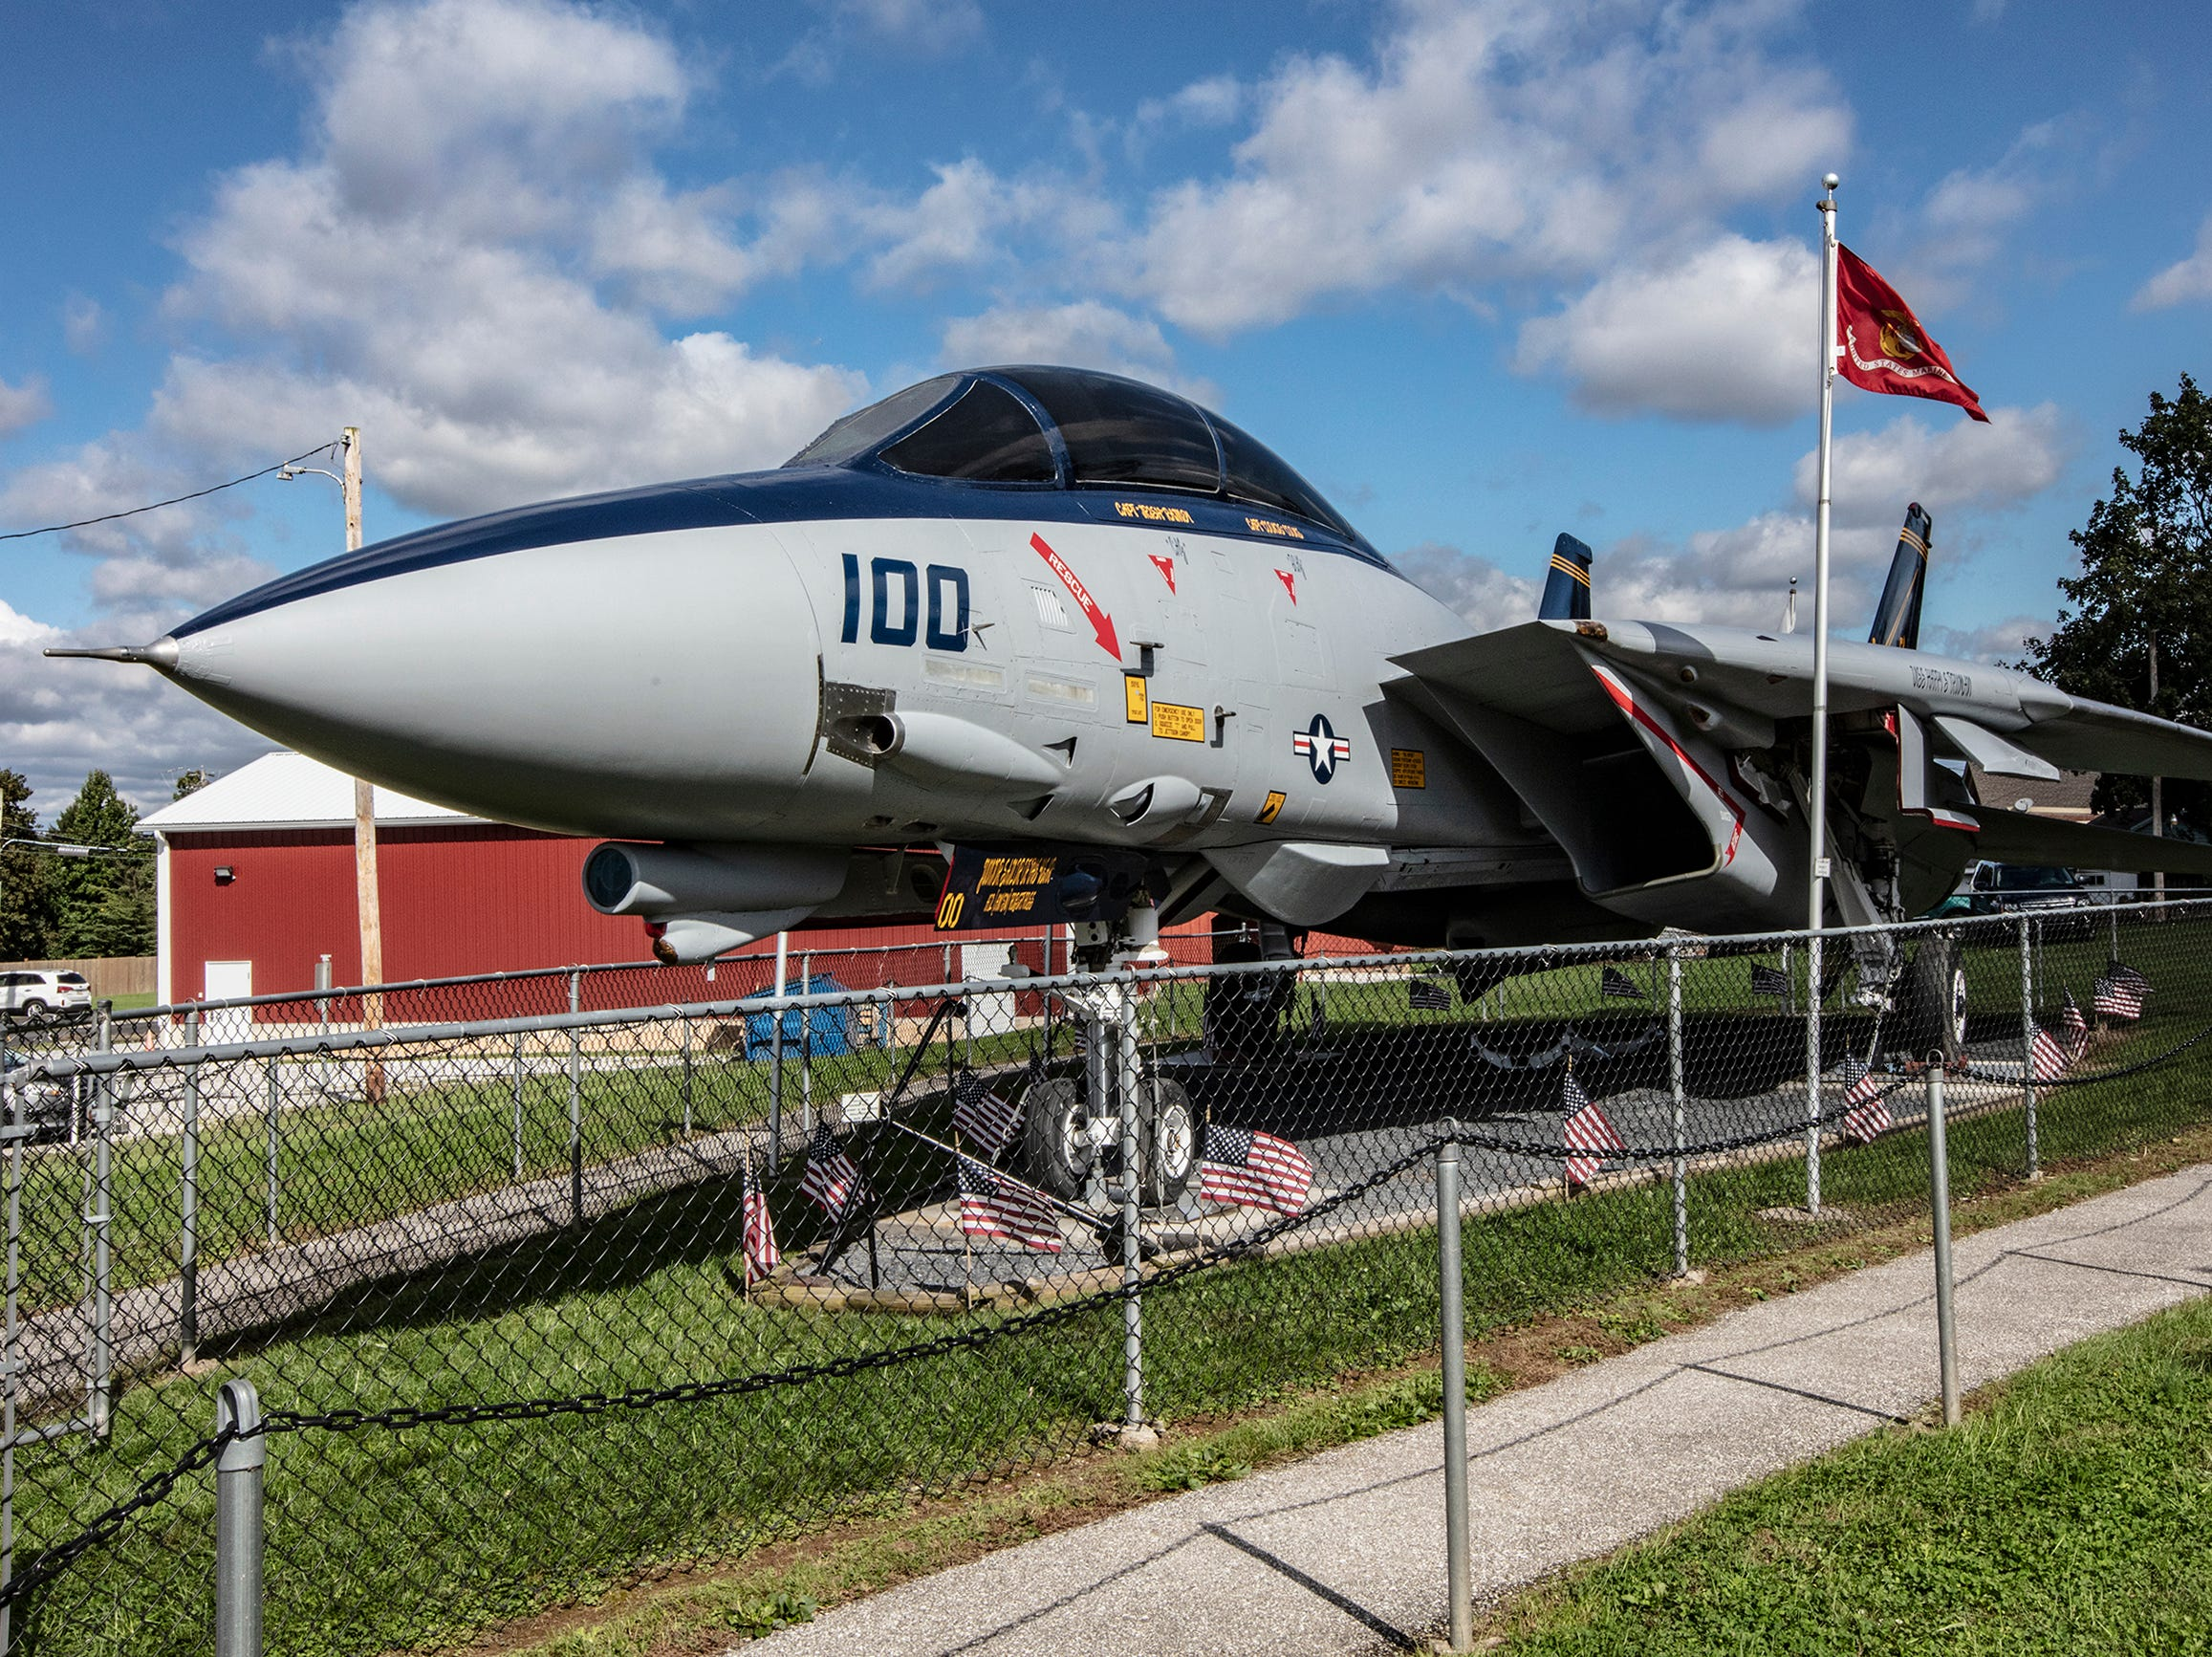 The newly restored F-14 Tomcat fighter jet at the East Berlin VFW.